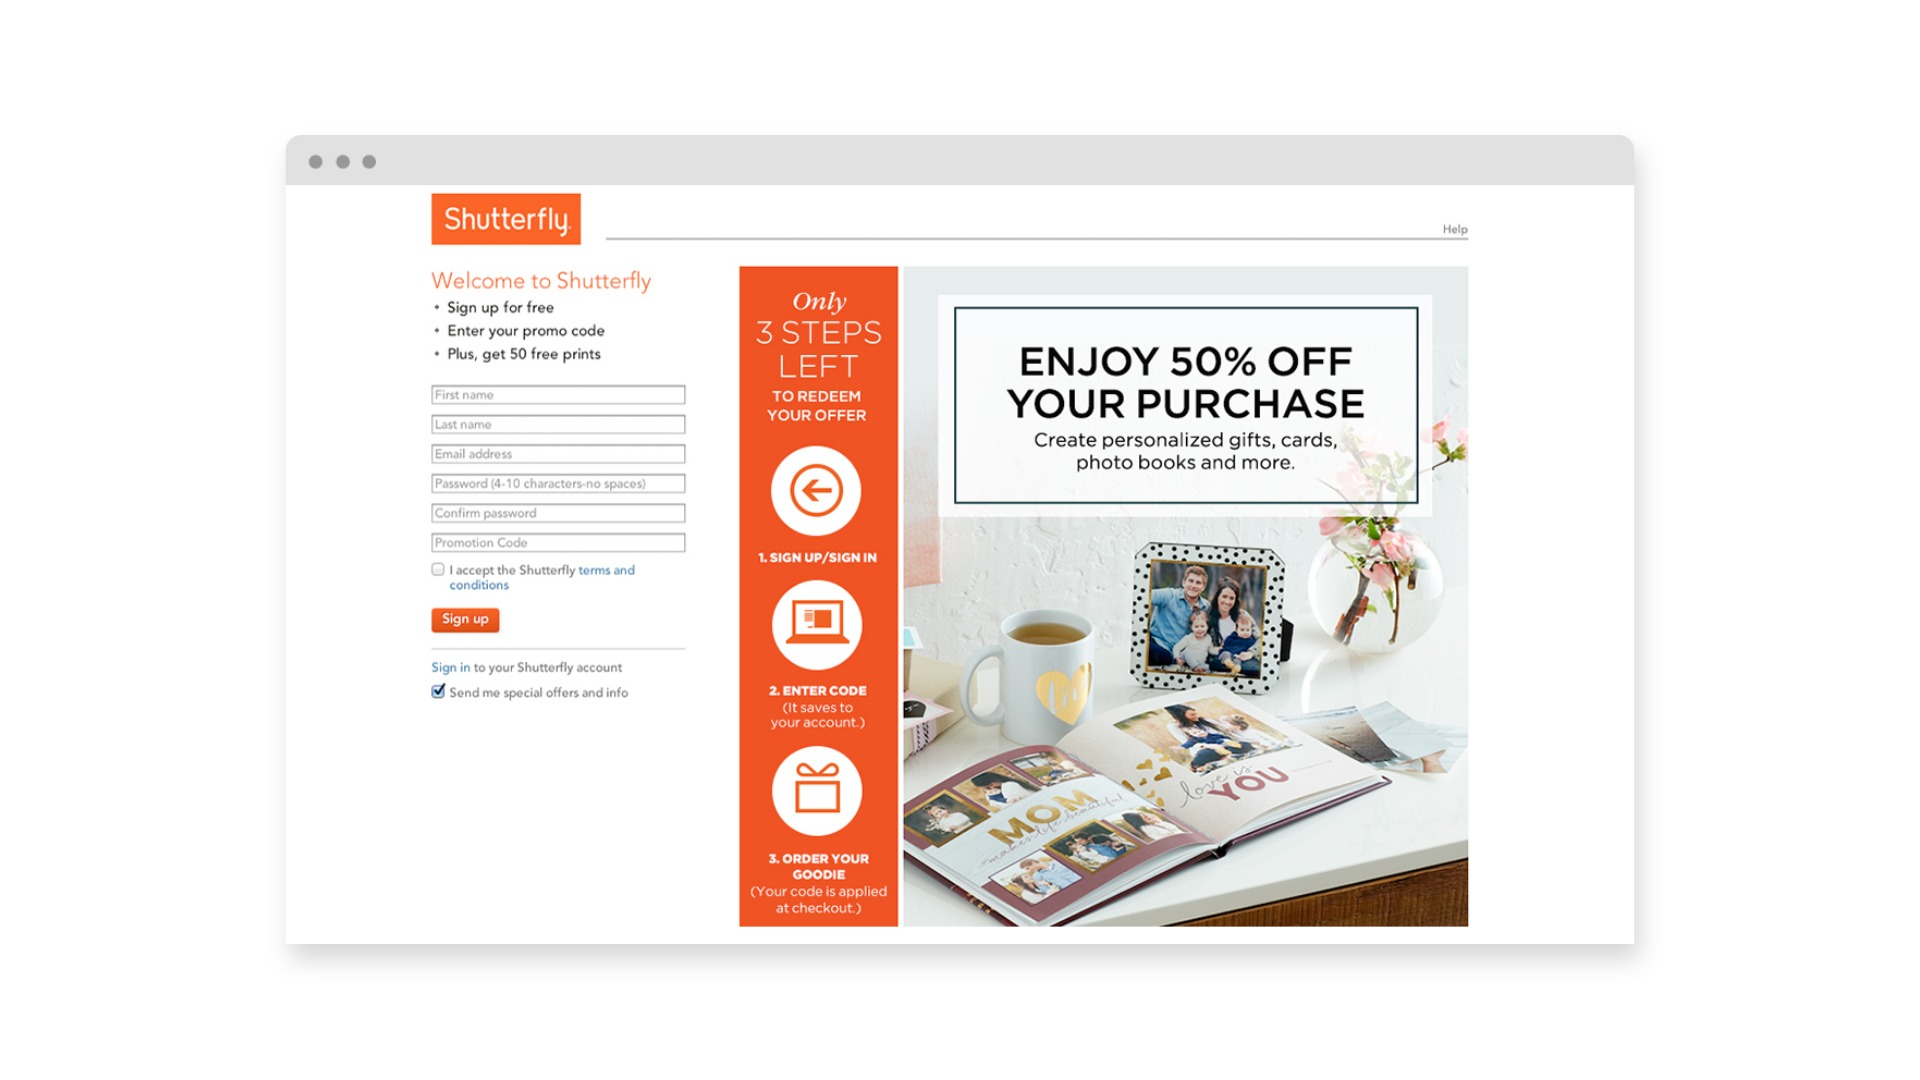 Shutterfly Enjoy $50 Off Your Purchase - Brand Advertising Agency - Citizen Best